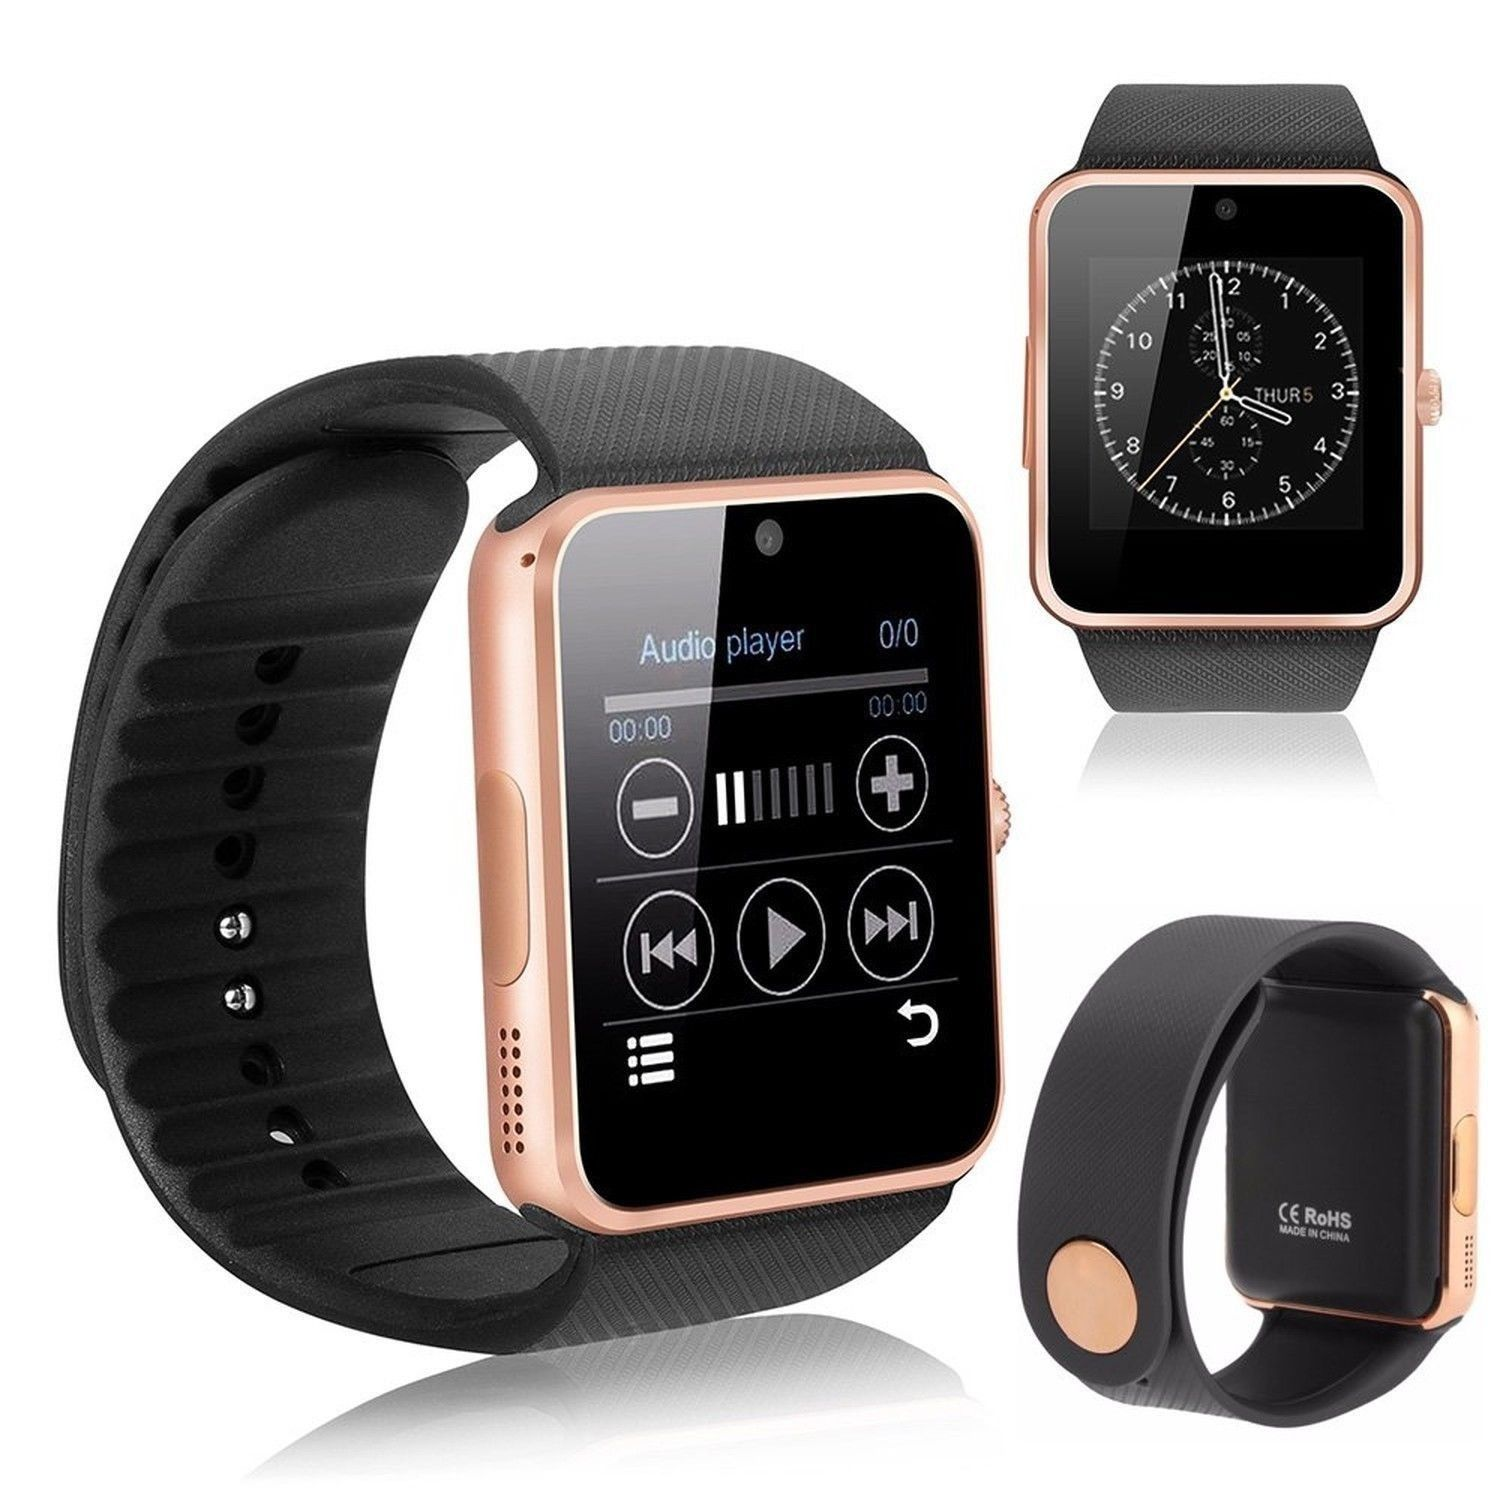 i wont new date model phone apple release and watches wristband need iphone specs watch magnetic